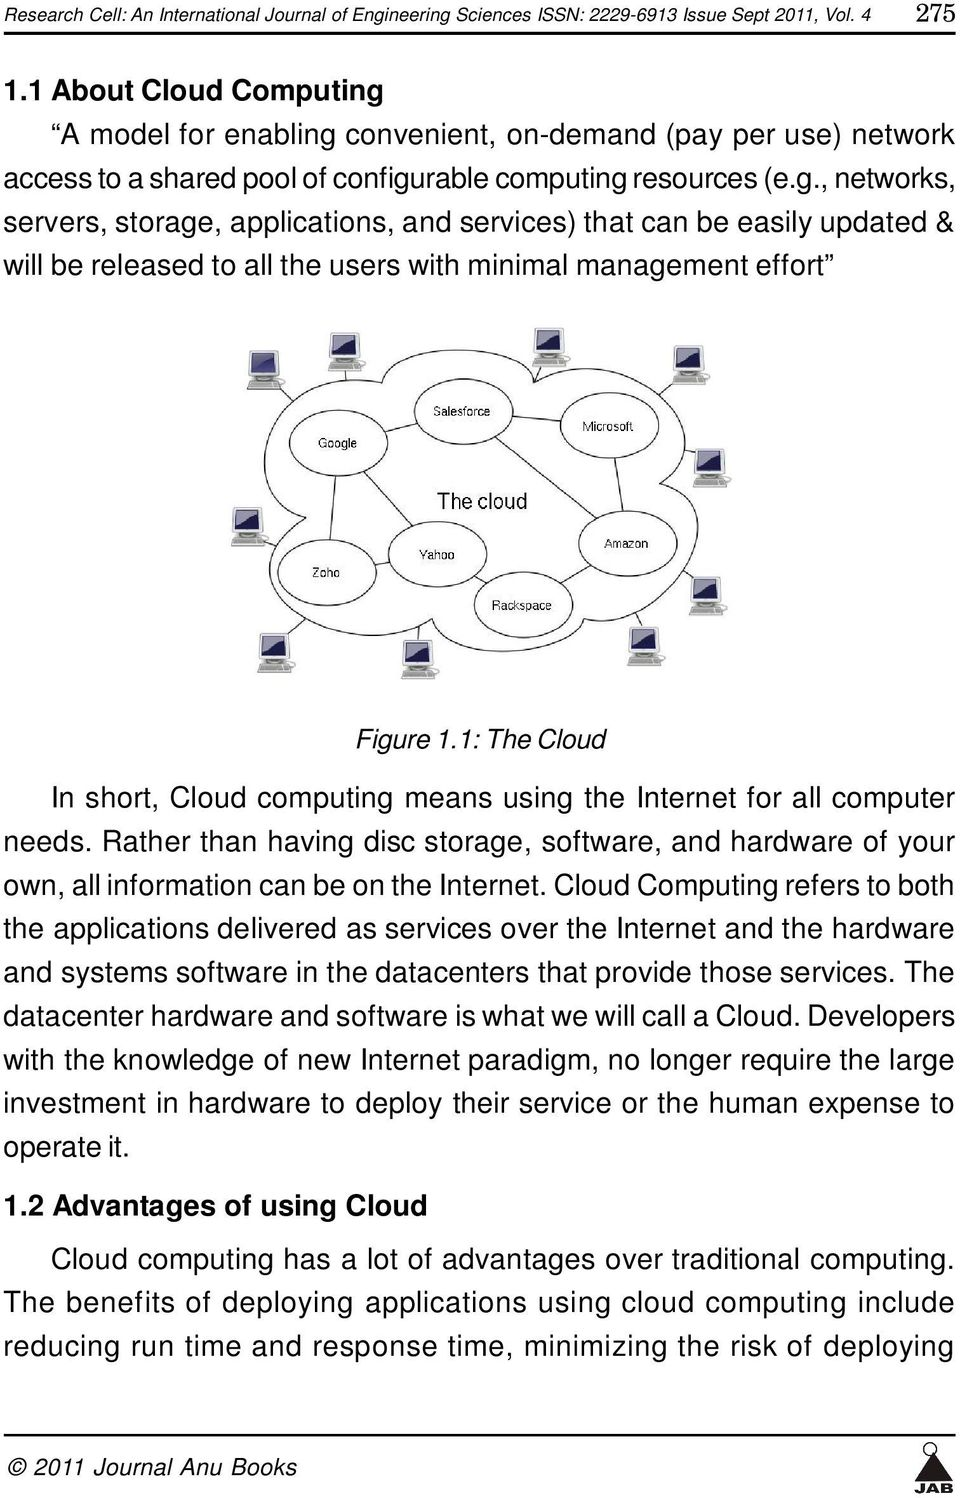 1: The Cloud In short, Cloud computing means using the Internet for all computer needs. Rather than having disc storage, software, and hardware of your own, all information can be on the Internet.